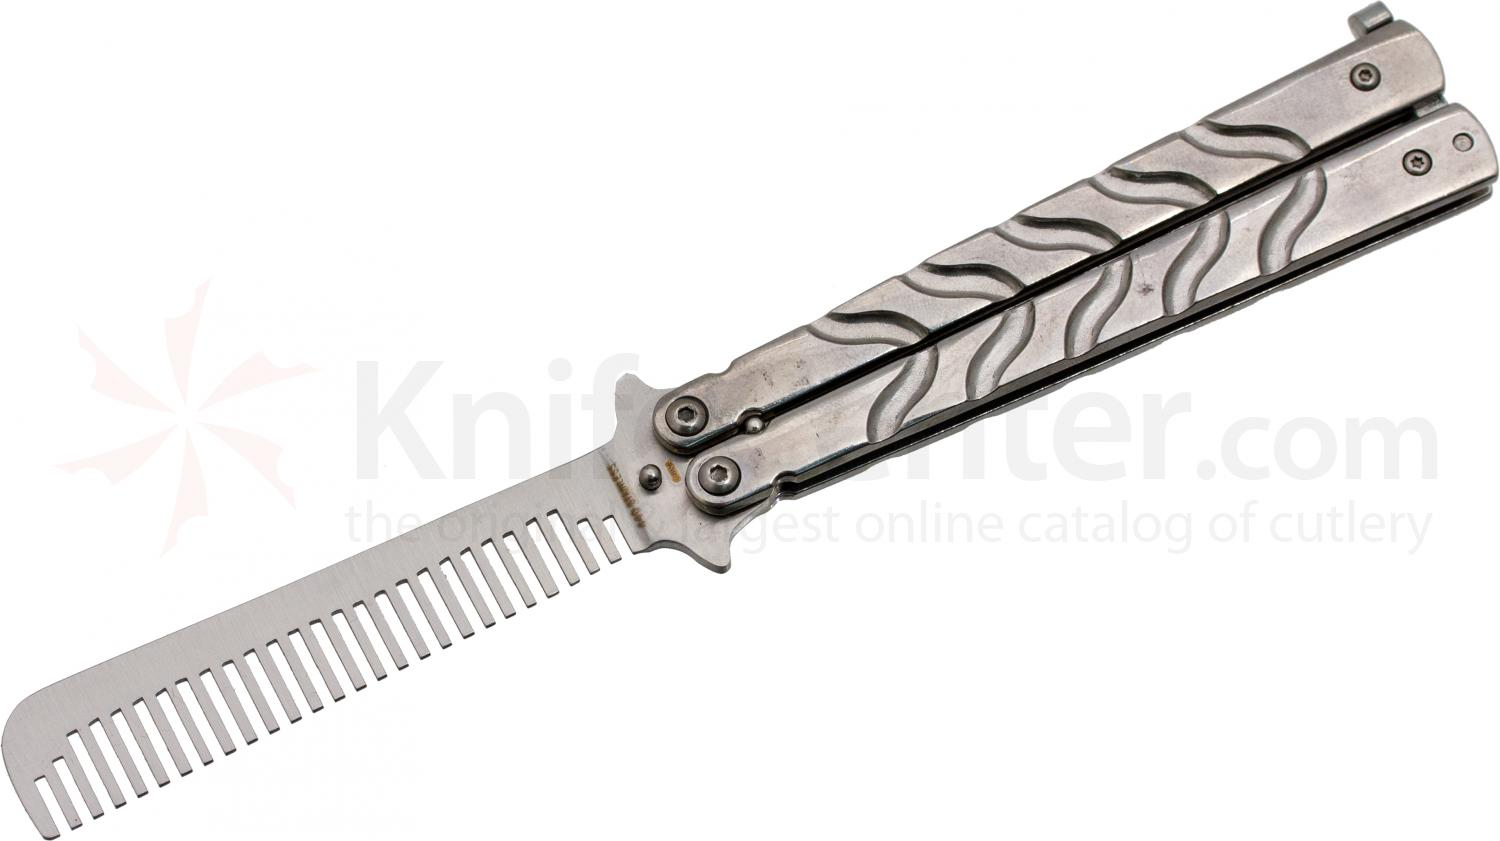 GenPro Balisong Butterfly Comb Trainer, 5 inch Closed, Silver